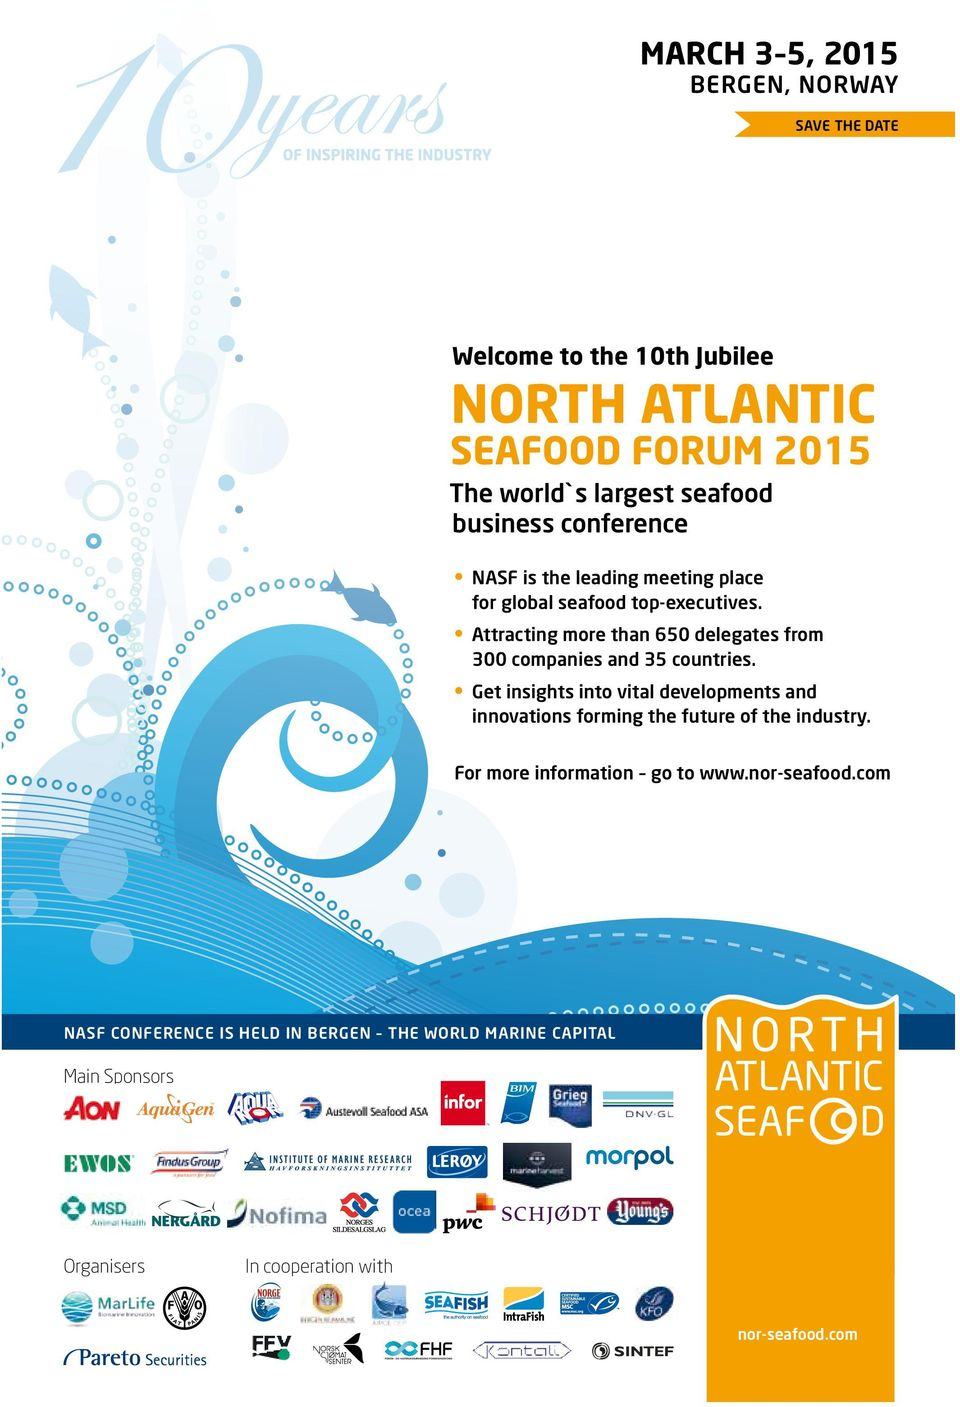 Get insights into vital developments and innovations forming the future of the industry. For more information go to www.nor-seafood.